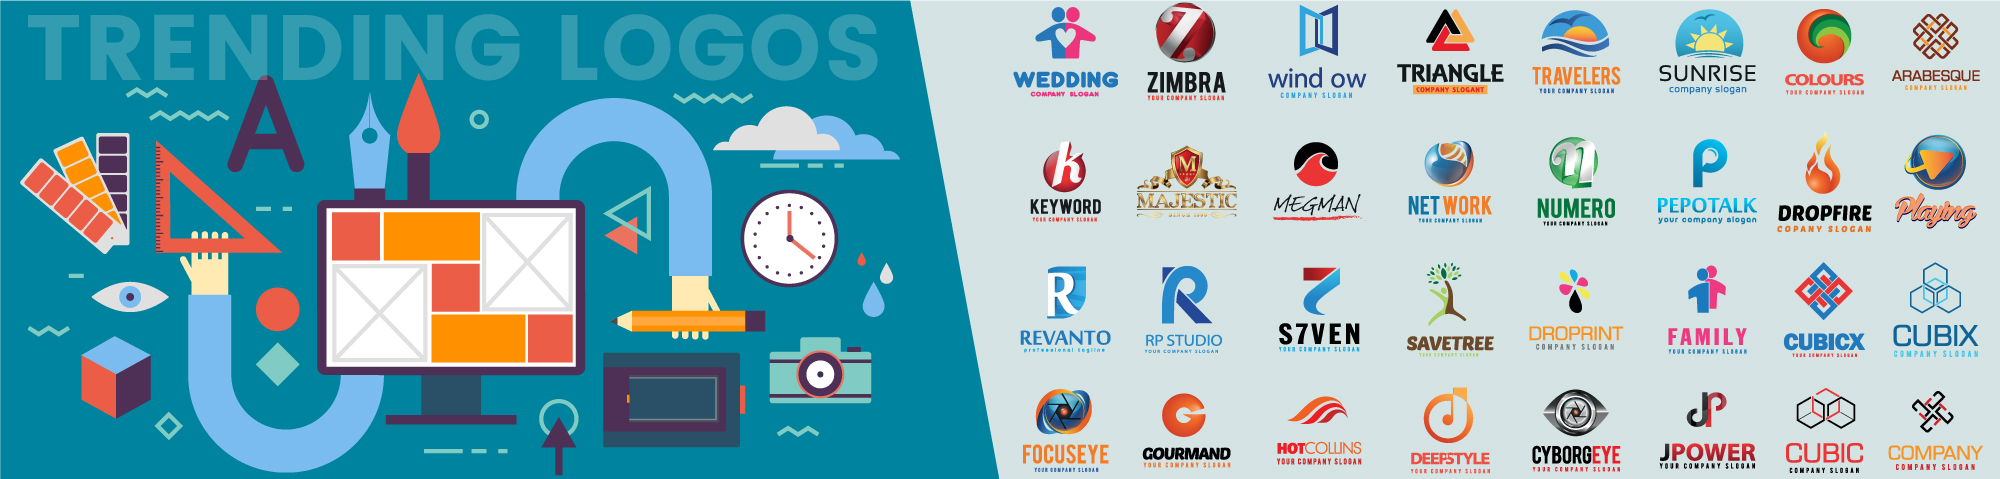 5 Famous Brands With Colorful Logos